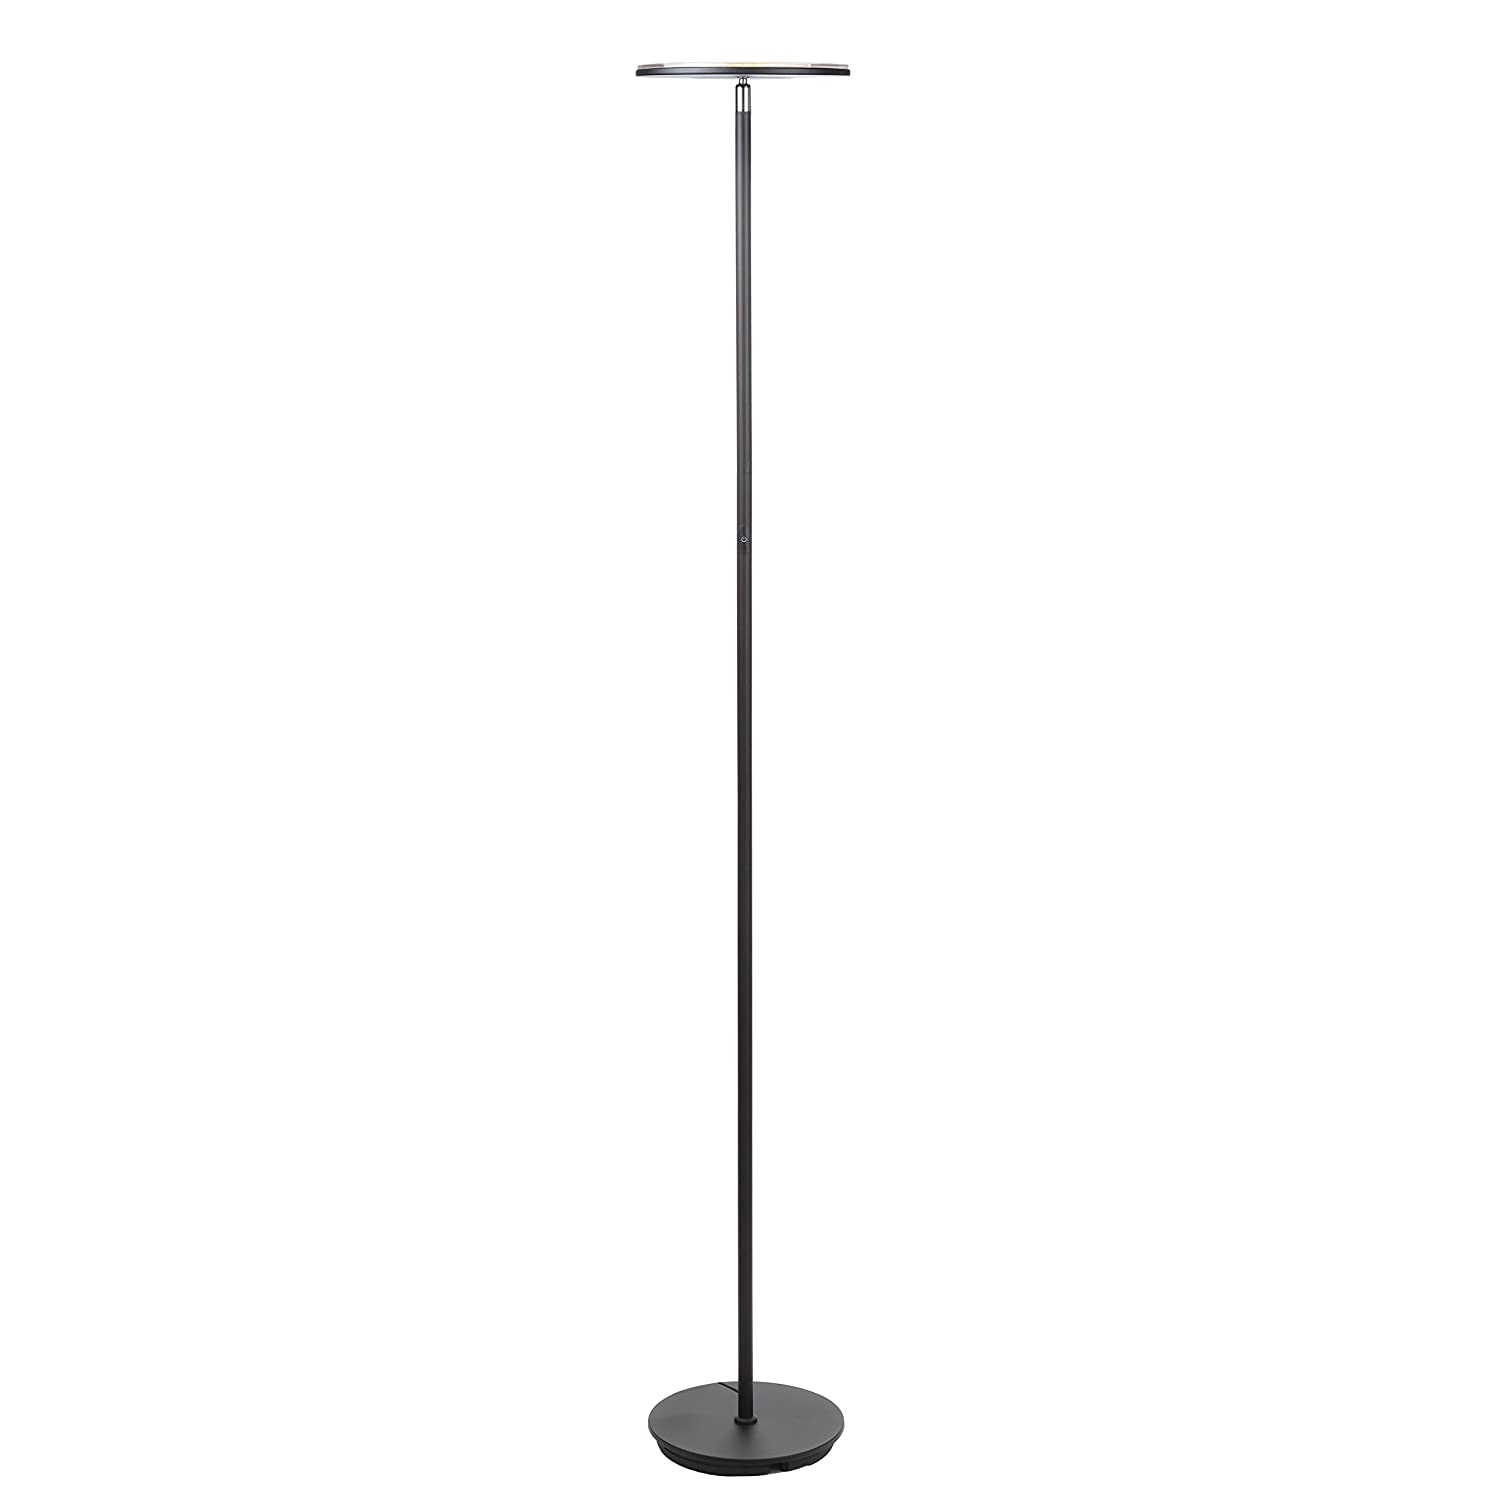 led torchiere floor lamp dimmable super bright 30 watt led ebay. Black Bedroom Furniture Sets. Home Design Ideas